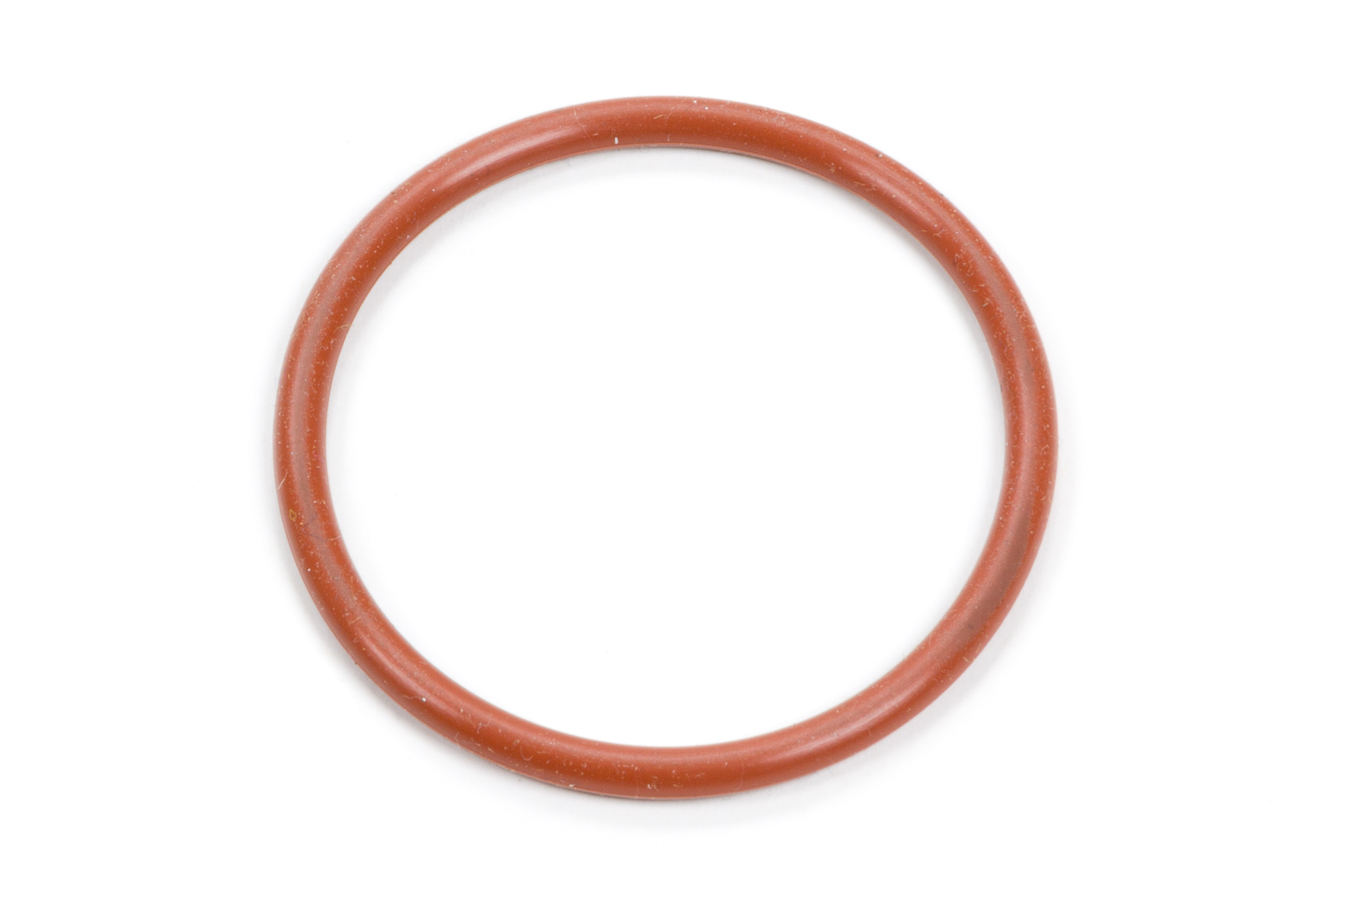 Cometic Gaskets C15159 O-Ring, Rubber, Upper Coolant Hose, Ford PowerStroke, Ford Fullsize Truck 2008-10, Each